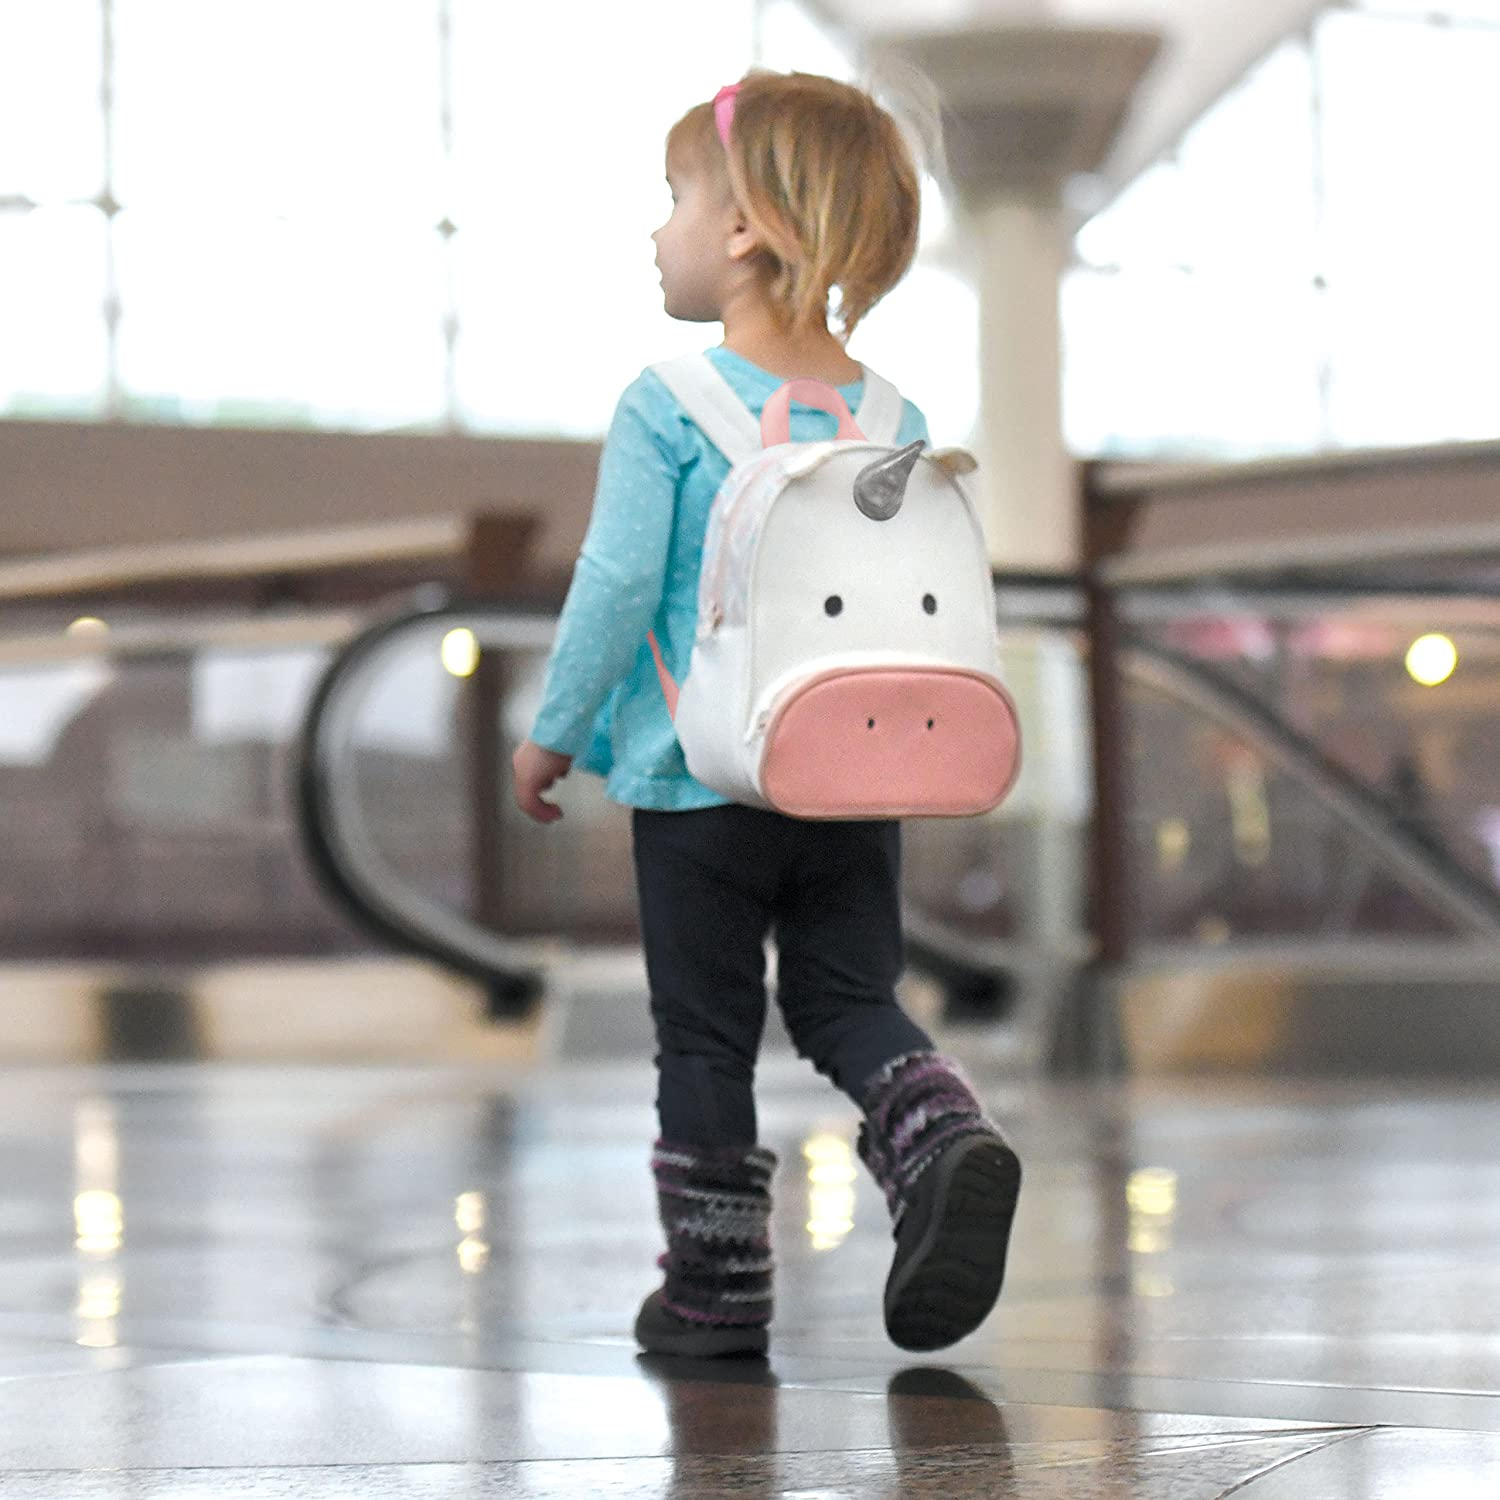 Travel Bug Toddler Safety Backpack Harness with Removable Tether (Unicorn)